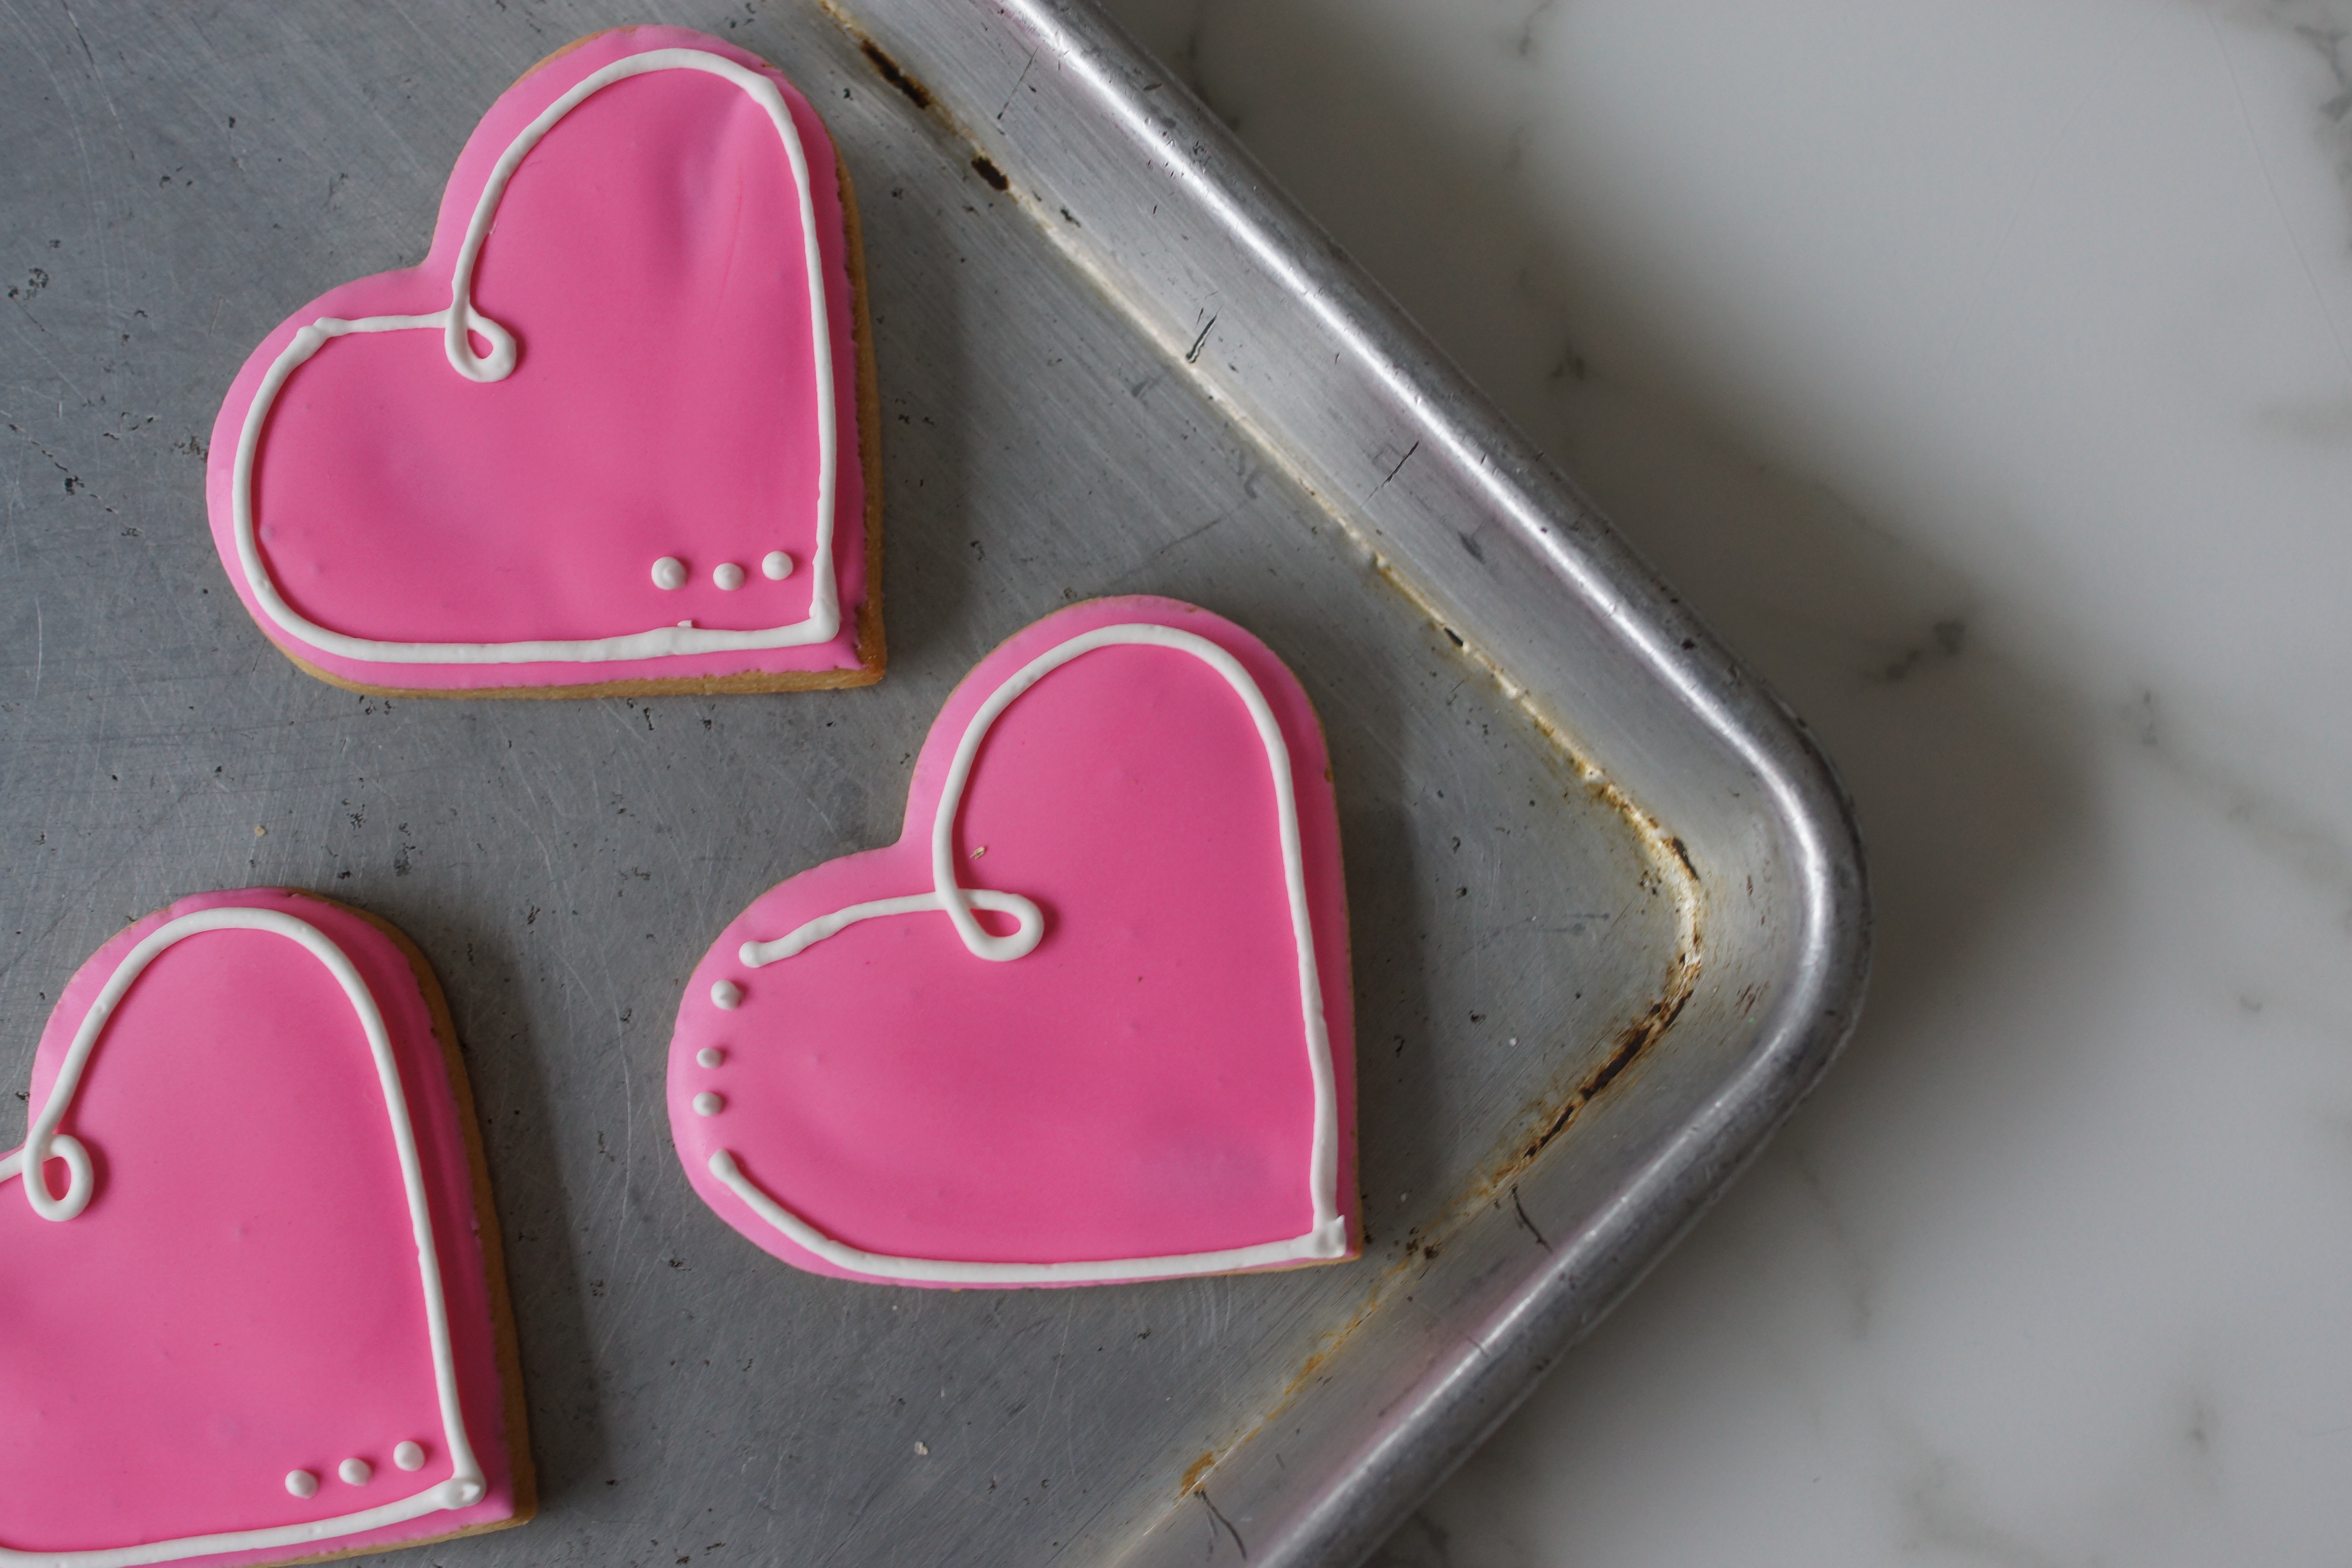 Valentine's Day Food Ideas, Valentine's Day Recipes, Popcorn Recipes, Paramount Events Chicago, Chicago Caterer, Woman Owned, Chicago Wedding Caterer, Catering Chicago, Event Catering Chicago, Chicago Wedding Catering, Wedding Caterers in Chicago, Catering Downtown Chicago, Caterer Chicago, Best Catering Chicago, Cookie, Food